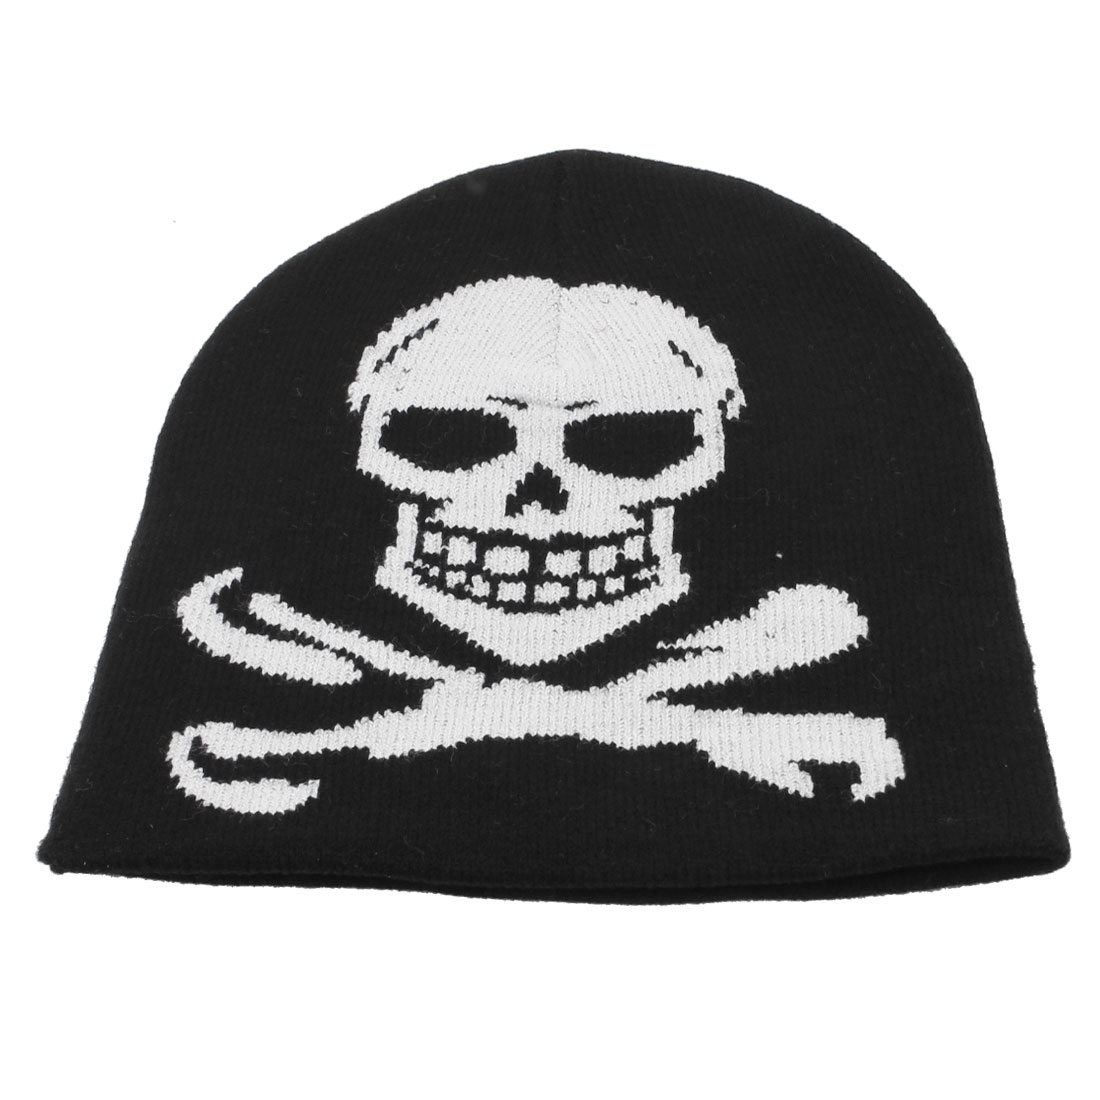 Skull Pattern Black White Outdoor Sport Winter Warmer Beanies Hat Cap